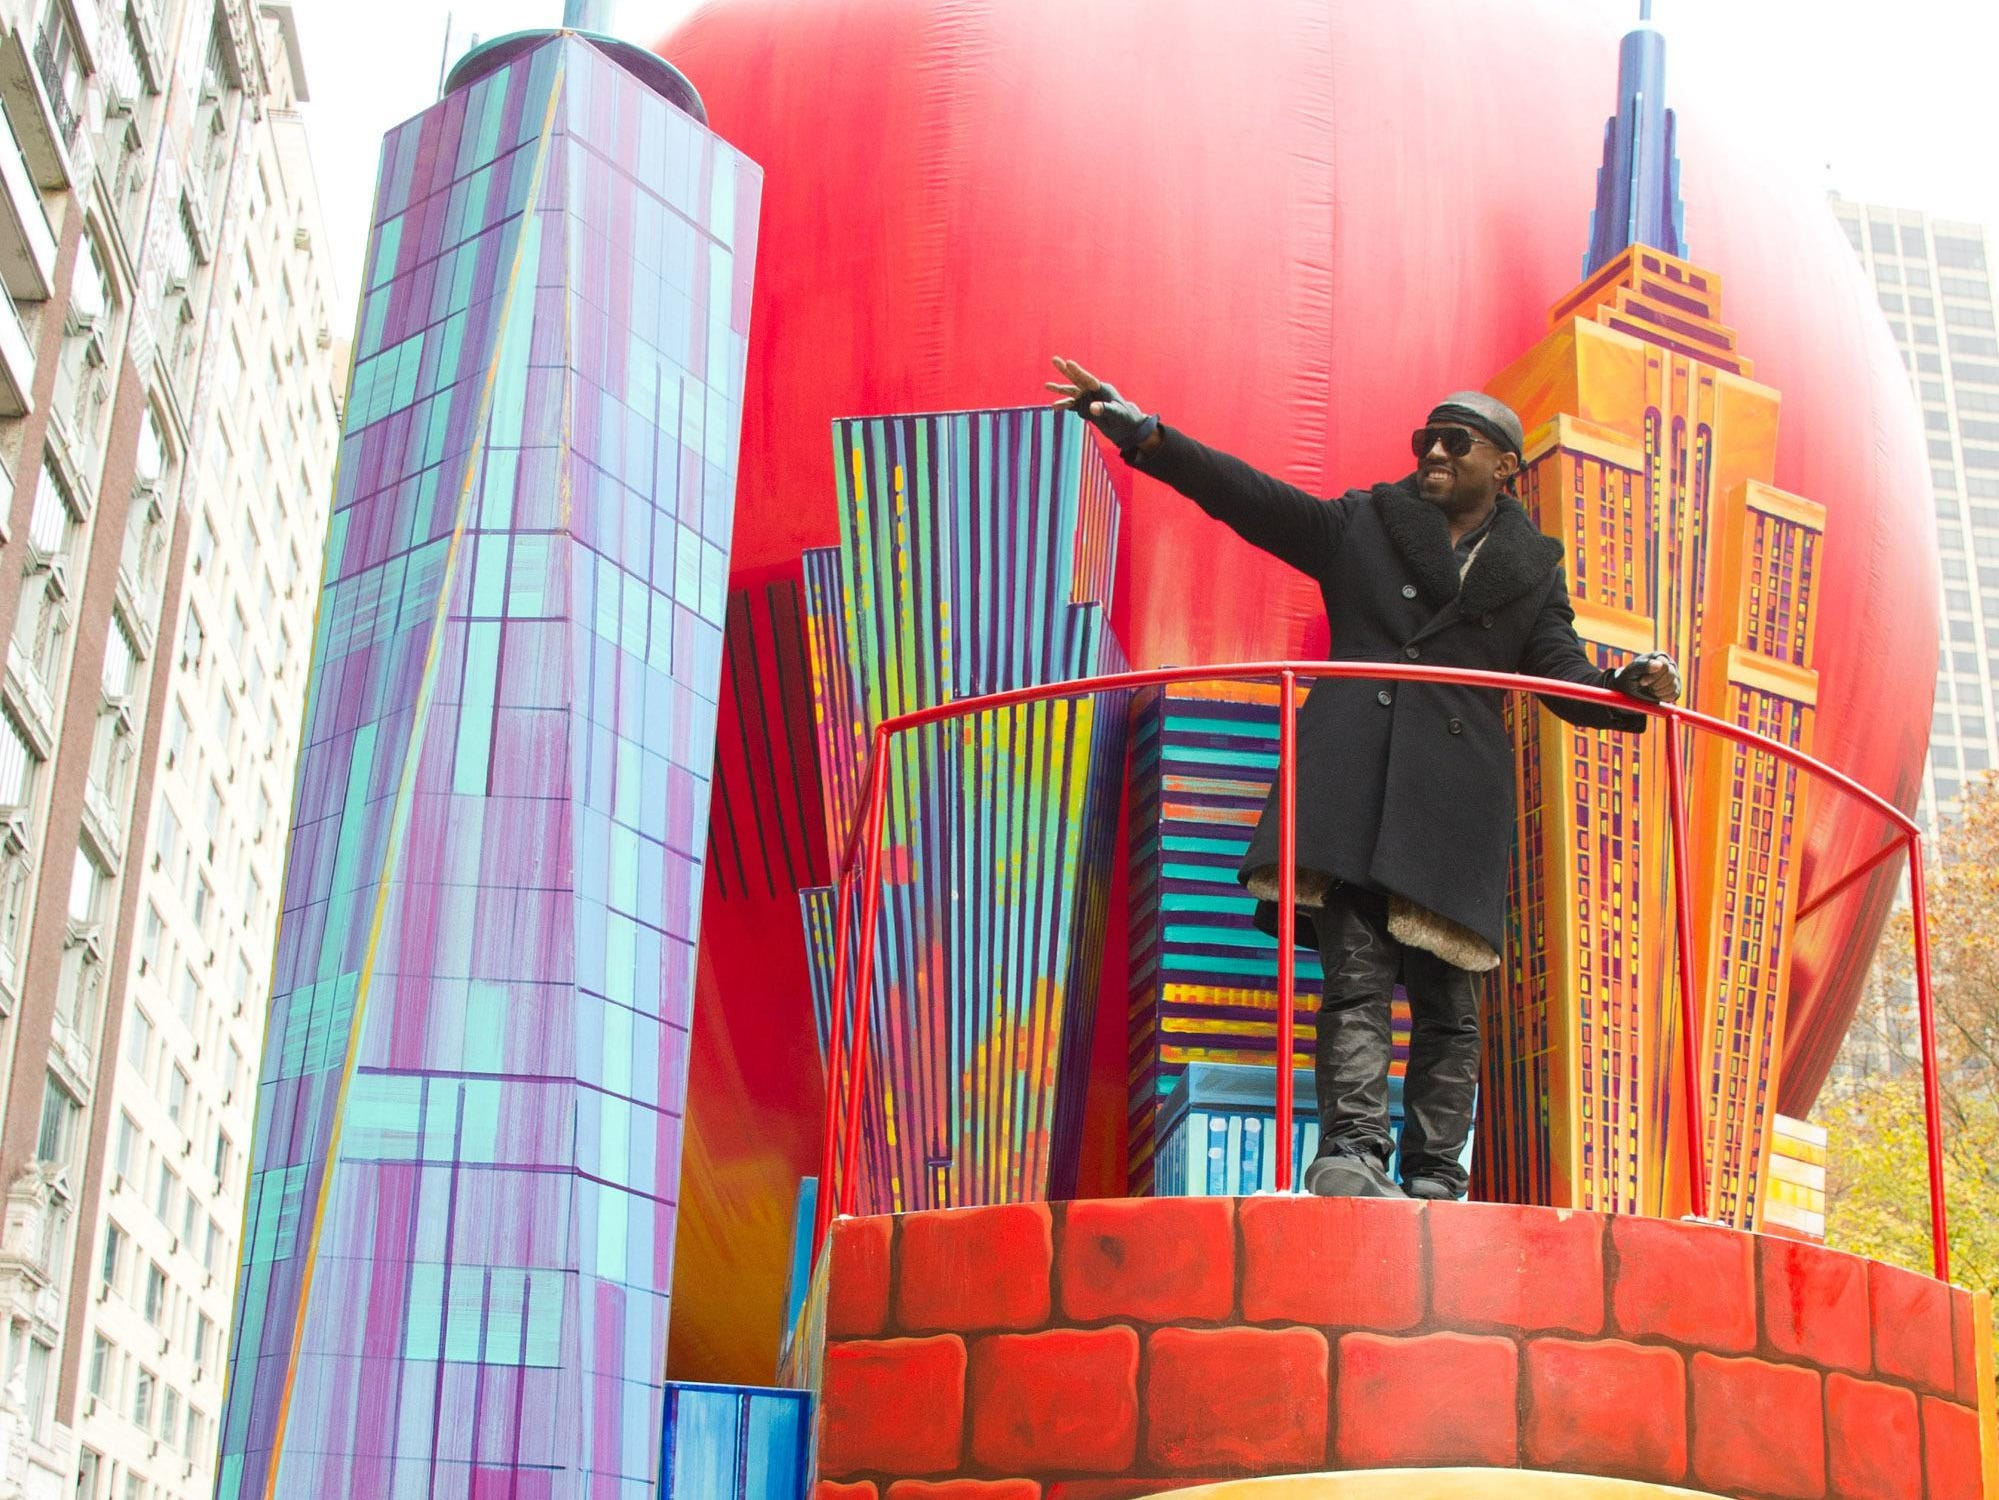 Kanye West rides a float down 7th Avenue in the Macy's Thanksgiving Day Parade in New York on Thursday, Nov. 25, 2010. (AP Photo/Charles Sykes)